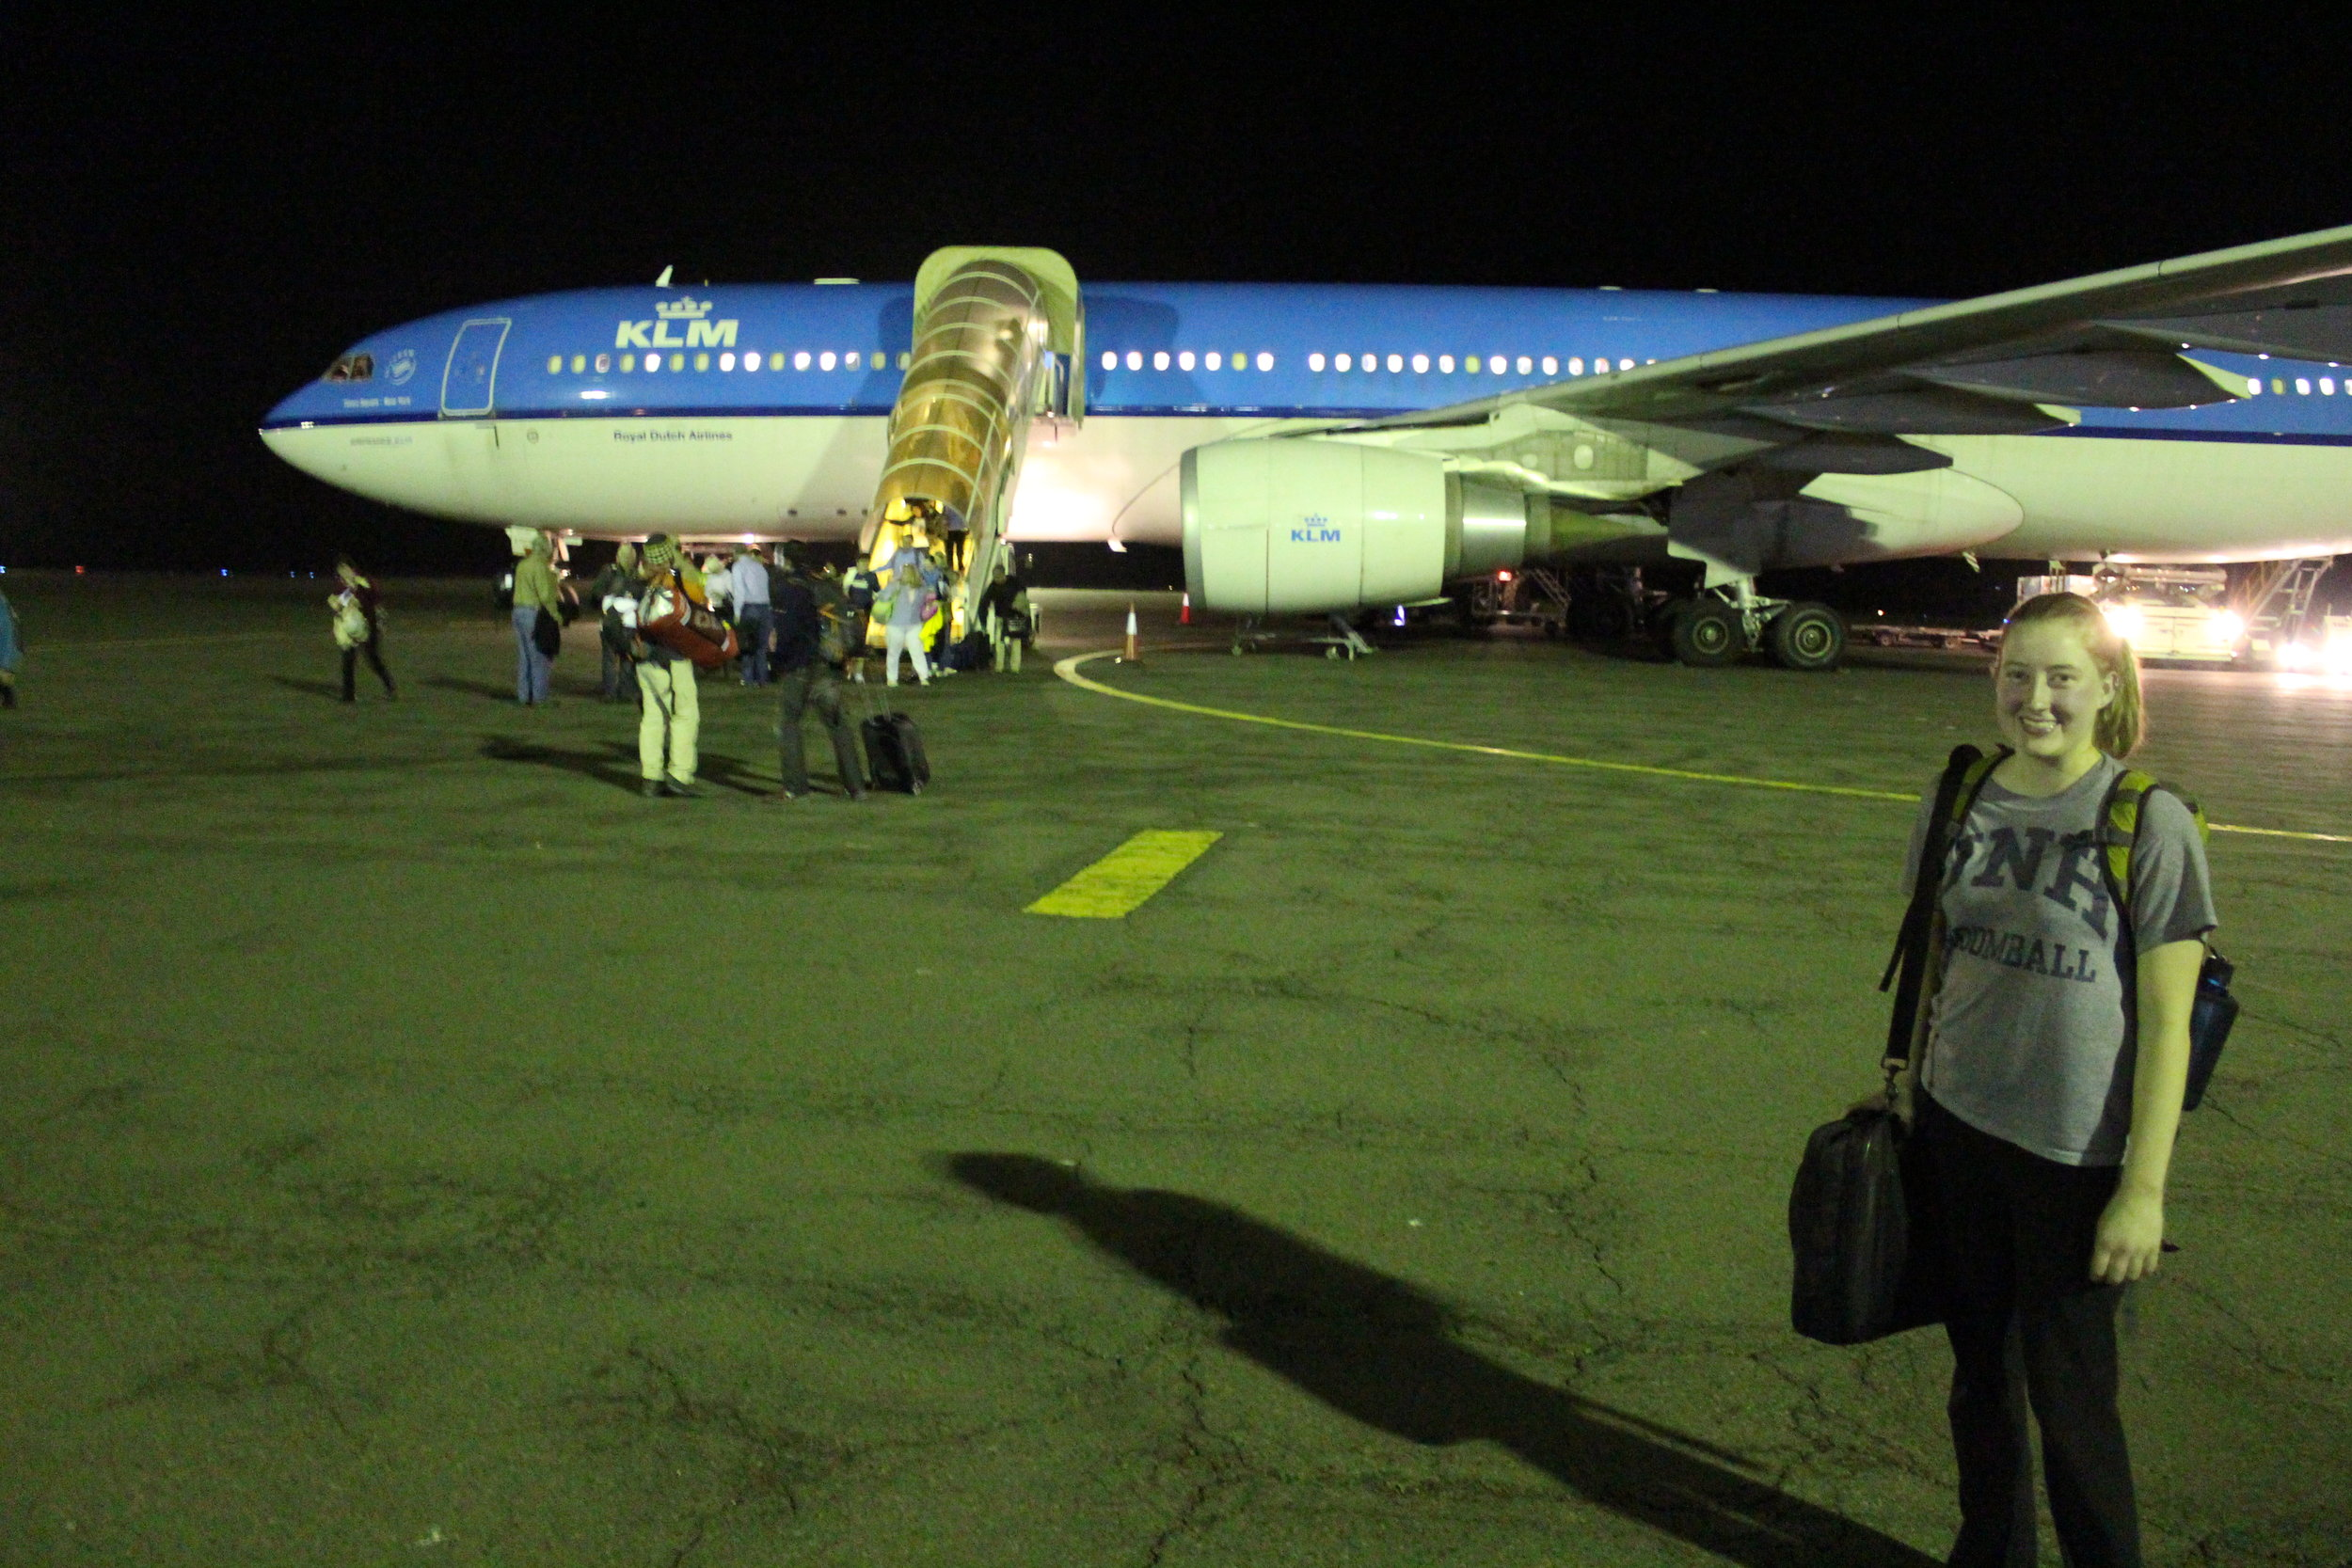 Getting off the plane on the runway at JRO.